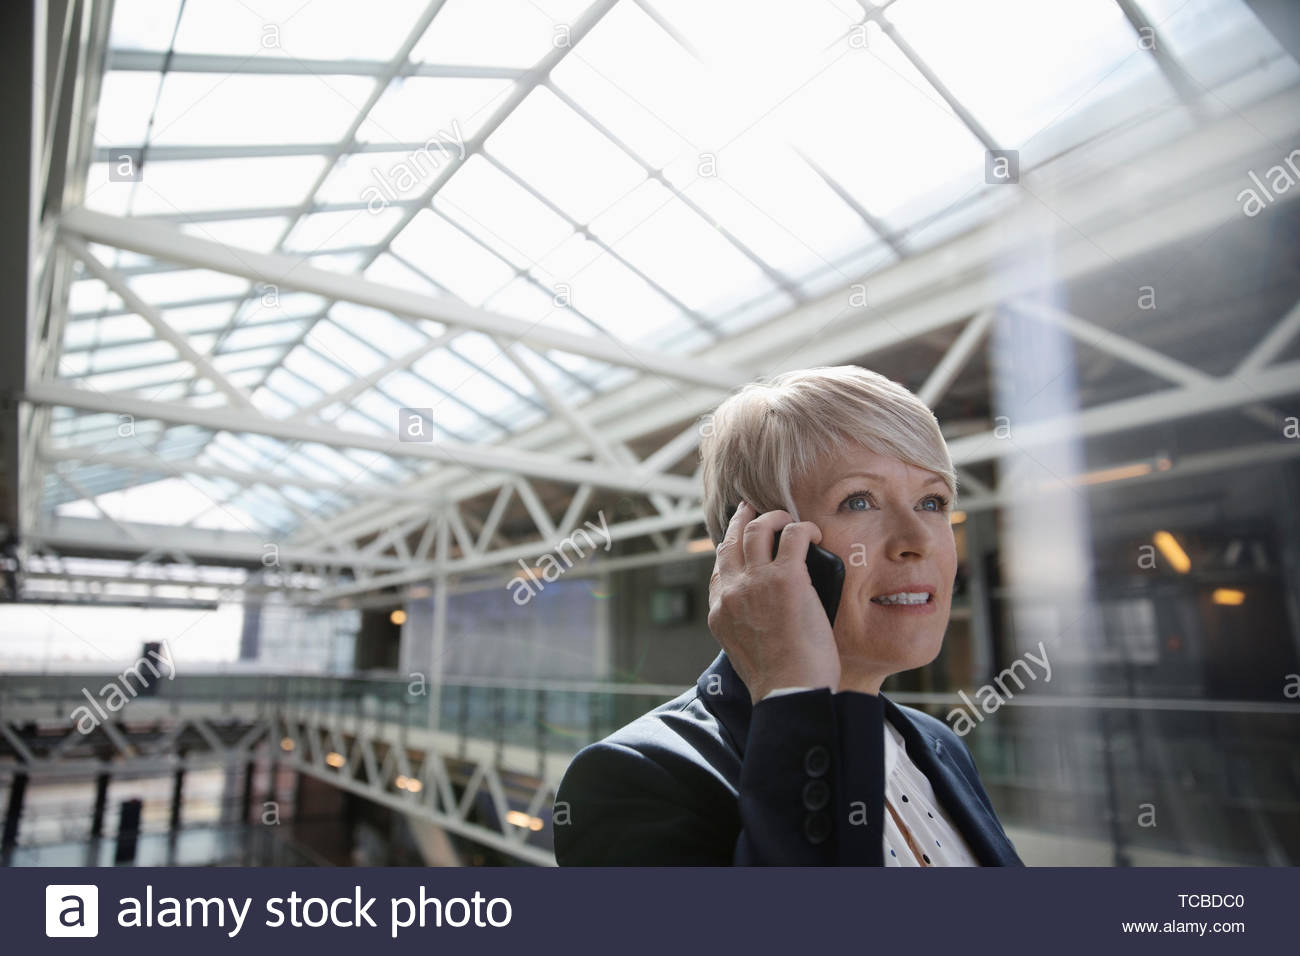 Businesswoman talking on smart phone in office atrium - Stock Image